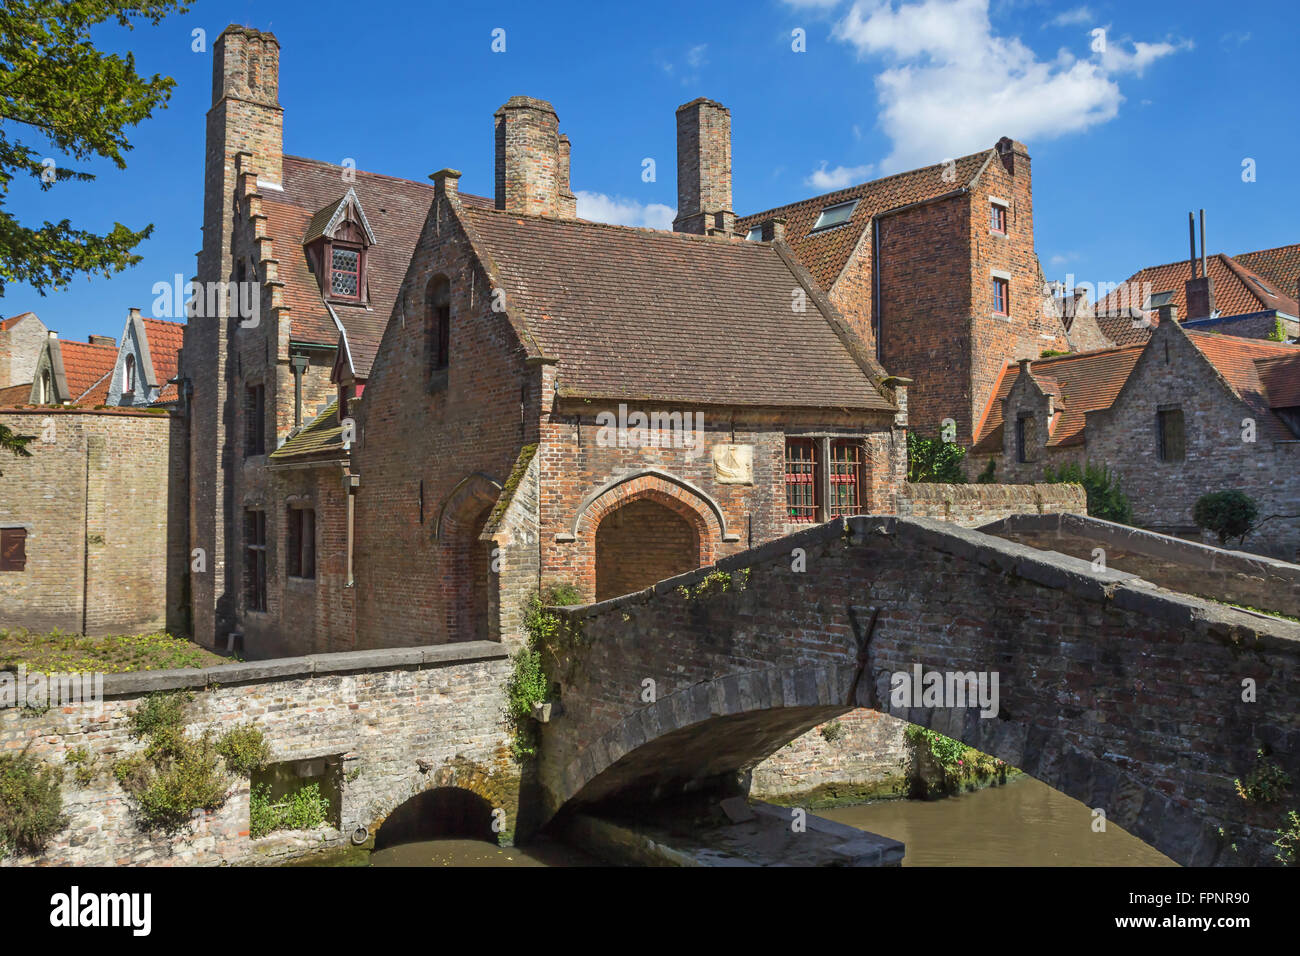 The famous 900 year old stone bridge in Bruges (Belgium) - Stock Image